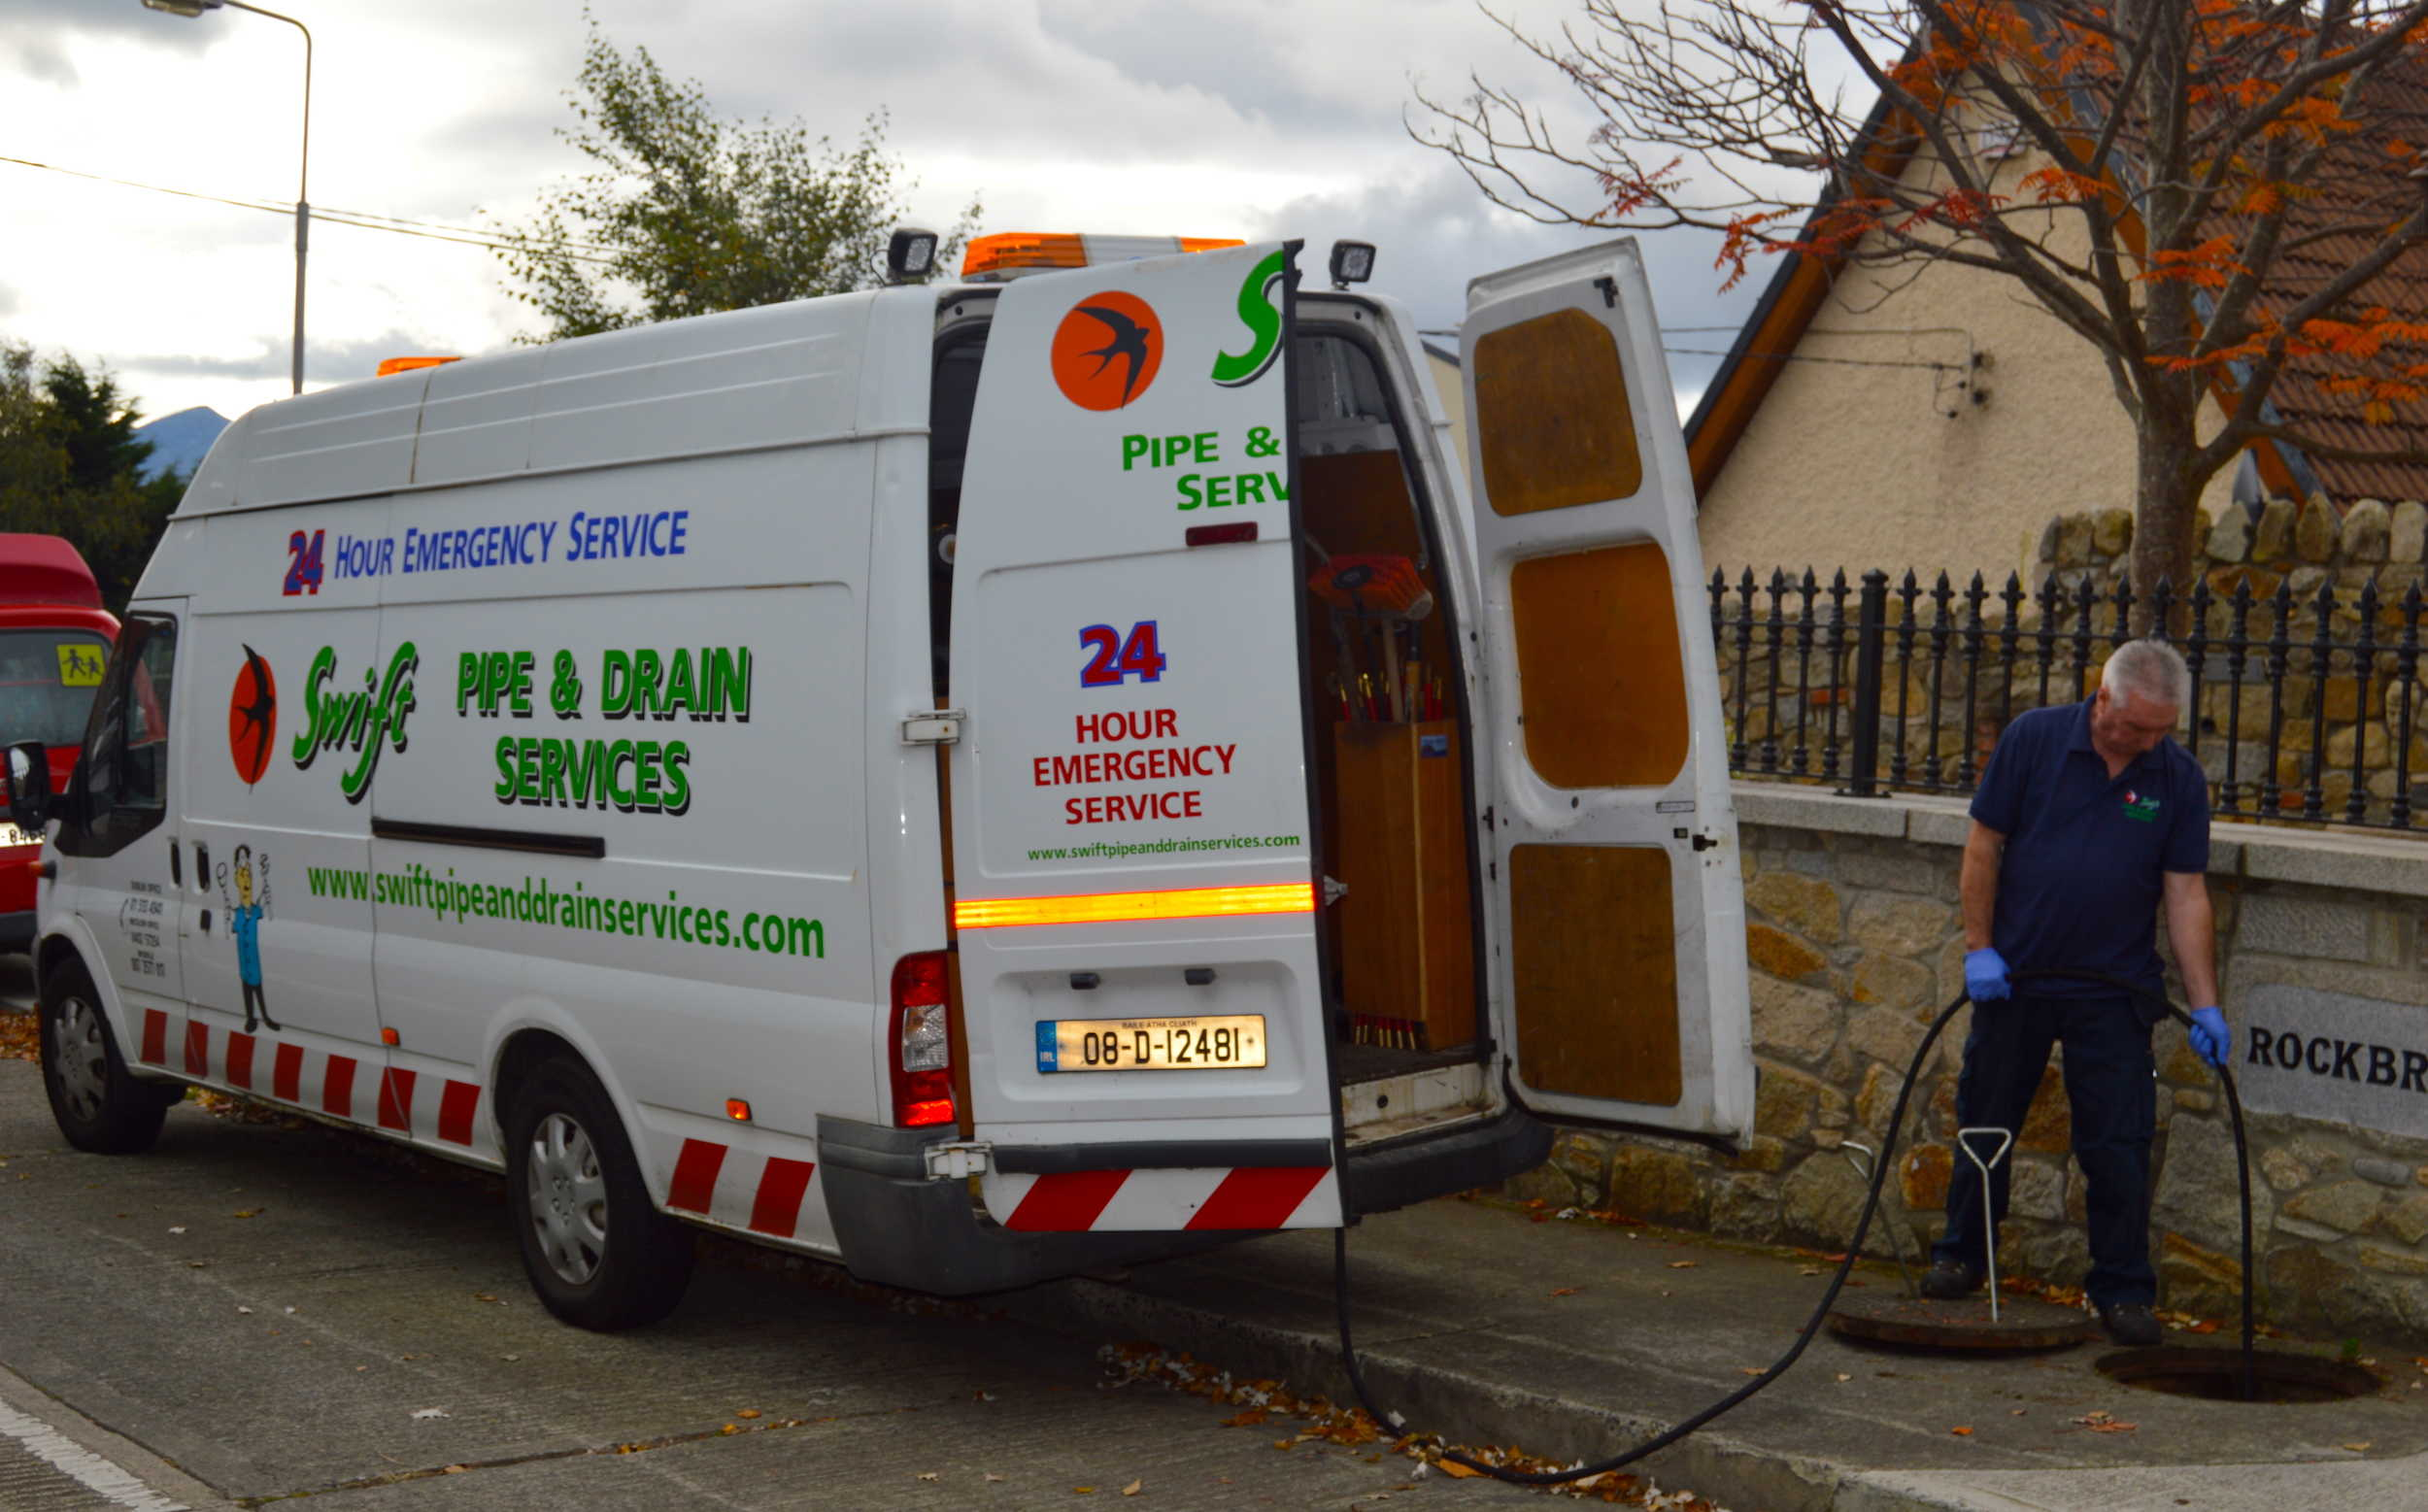 Local Pipe & Drain Cleaning and Unblocking Service for Dublin & surrounding areas